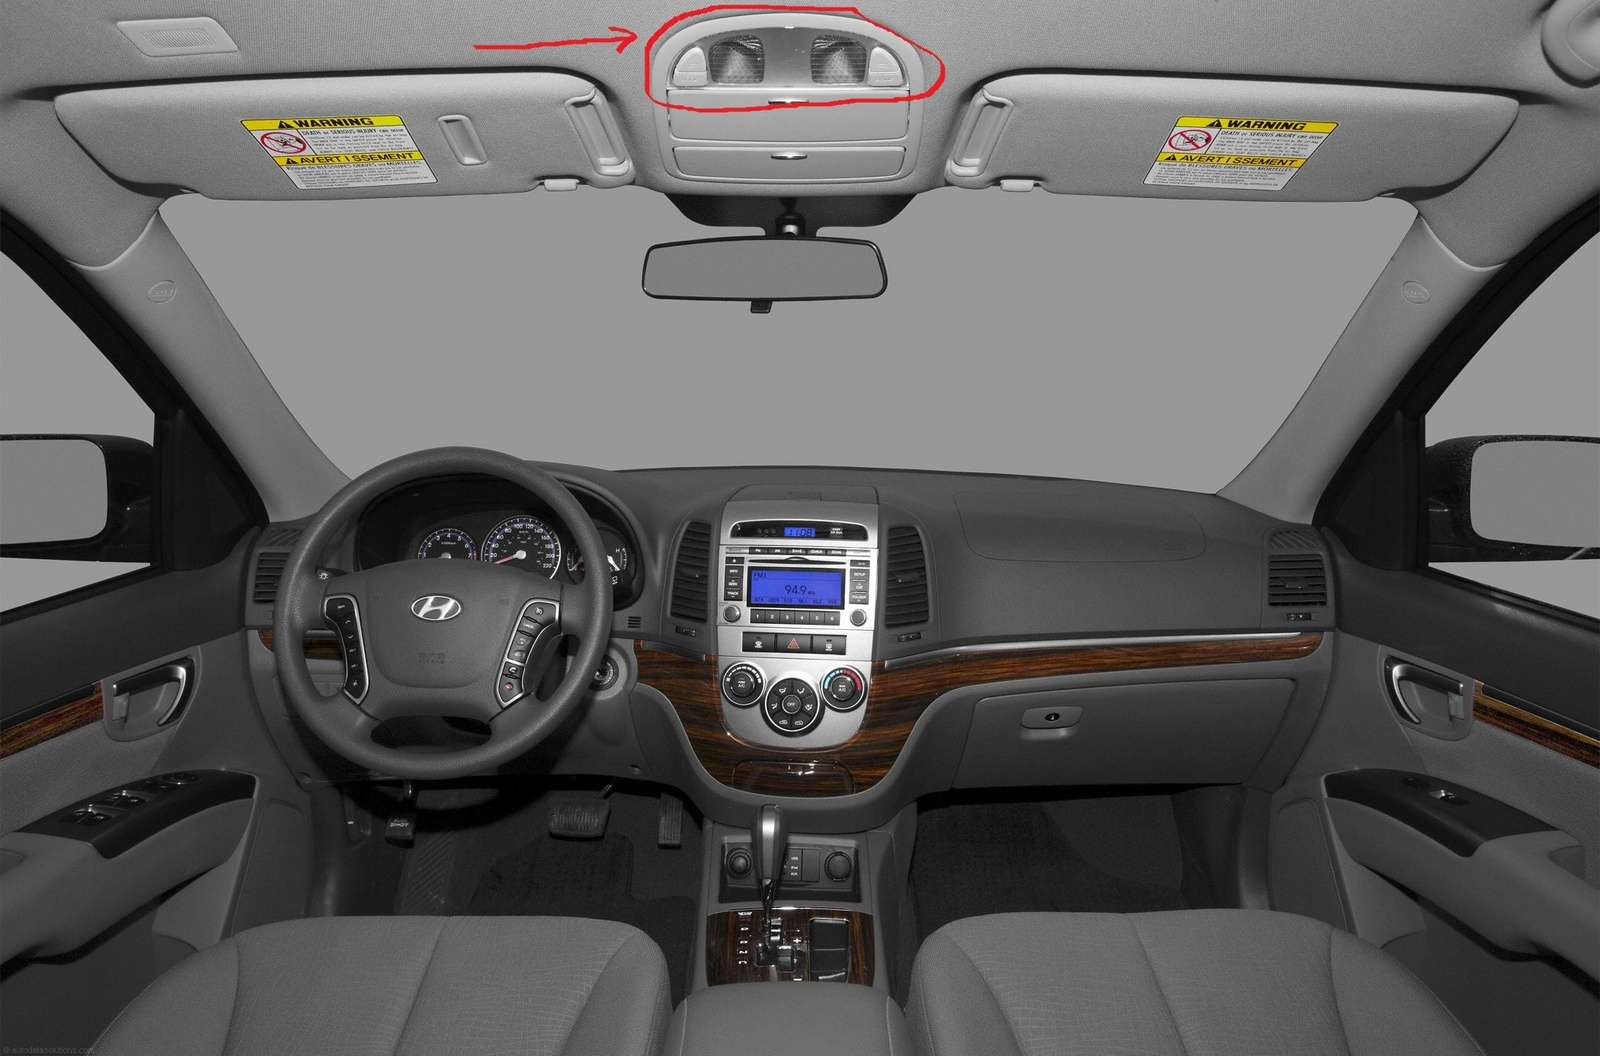 hight resolution of how do i turn on the interior lights to go on automatically for my hyundai santa